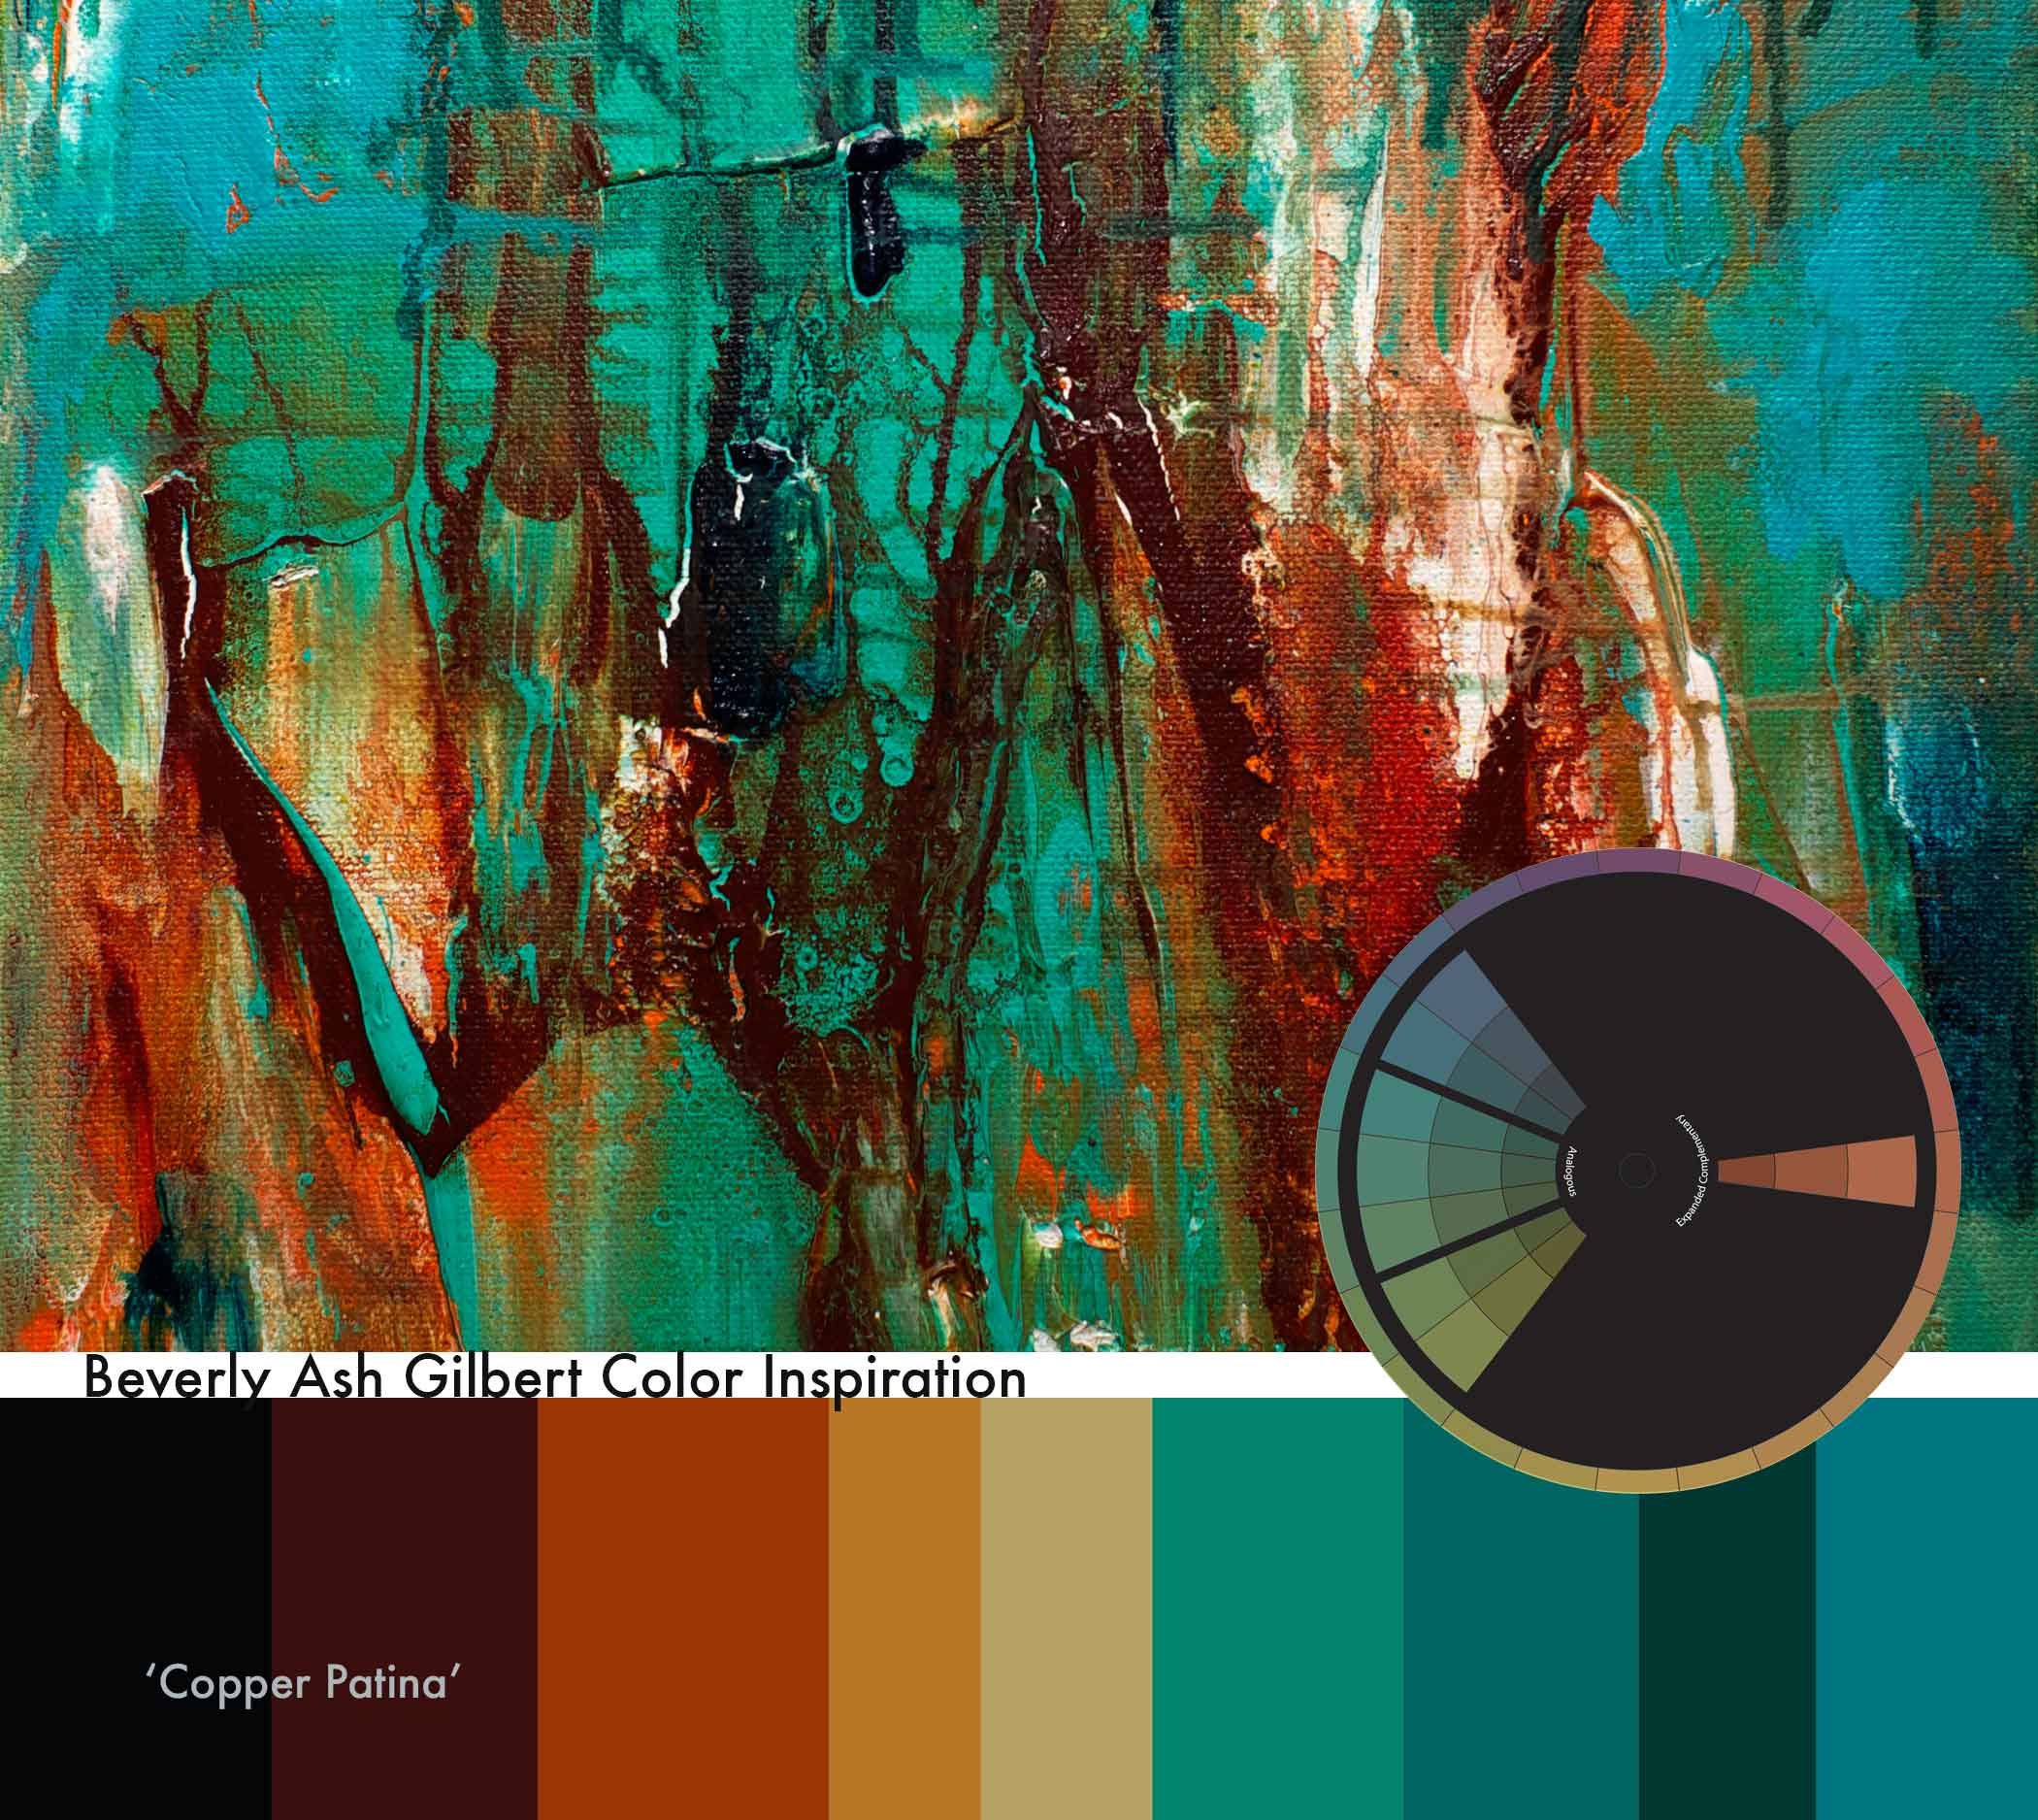 ColorInspiration_CopperPatina_small.jpg